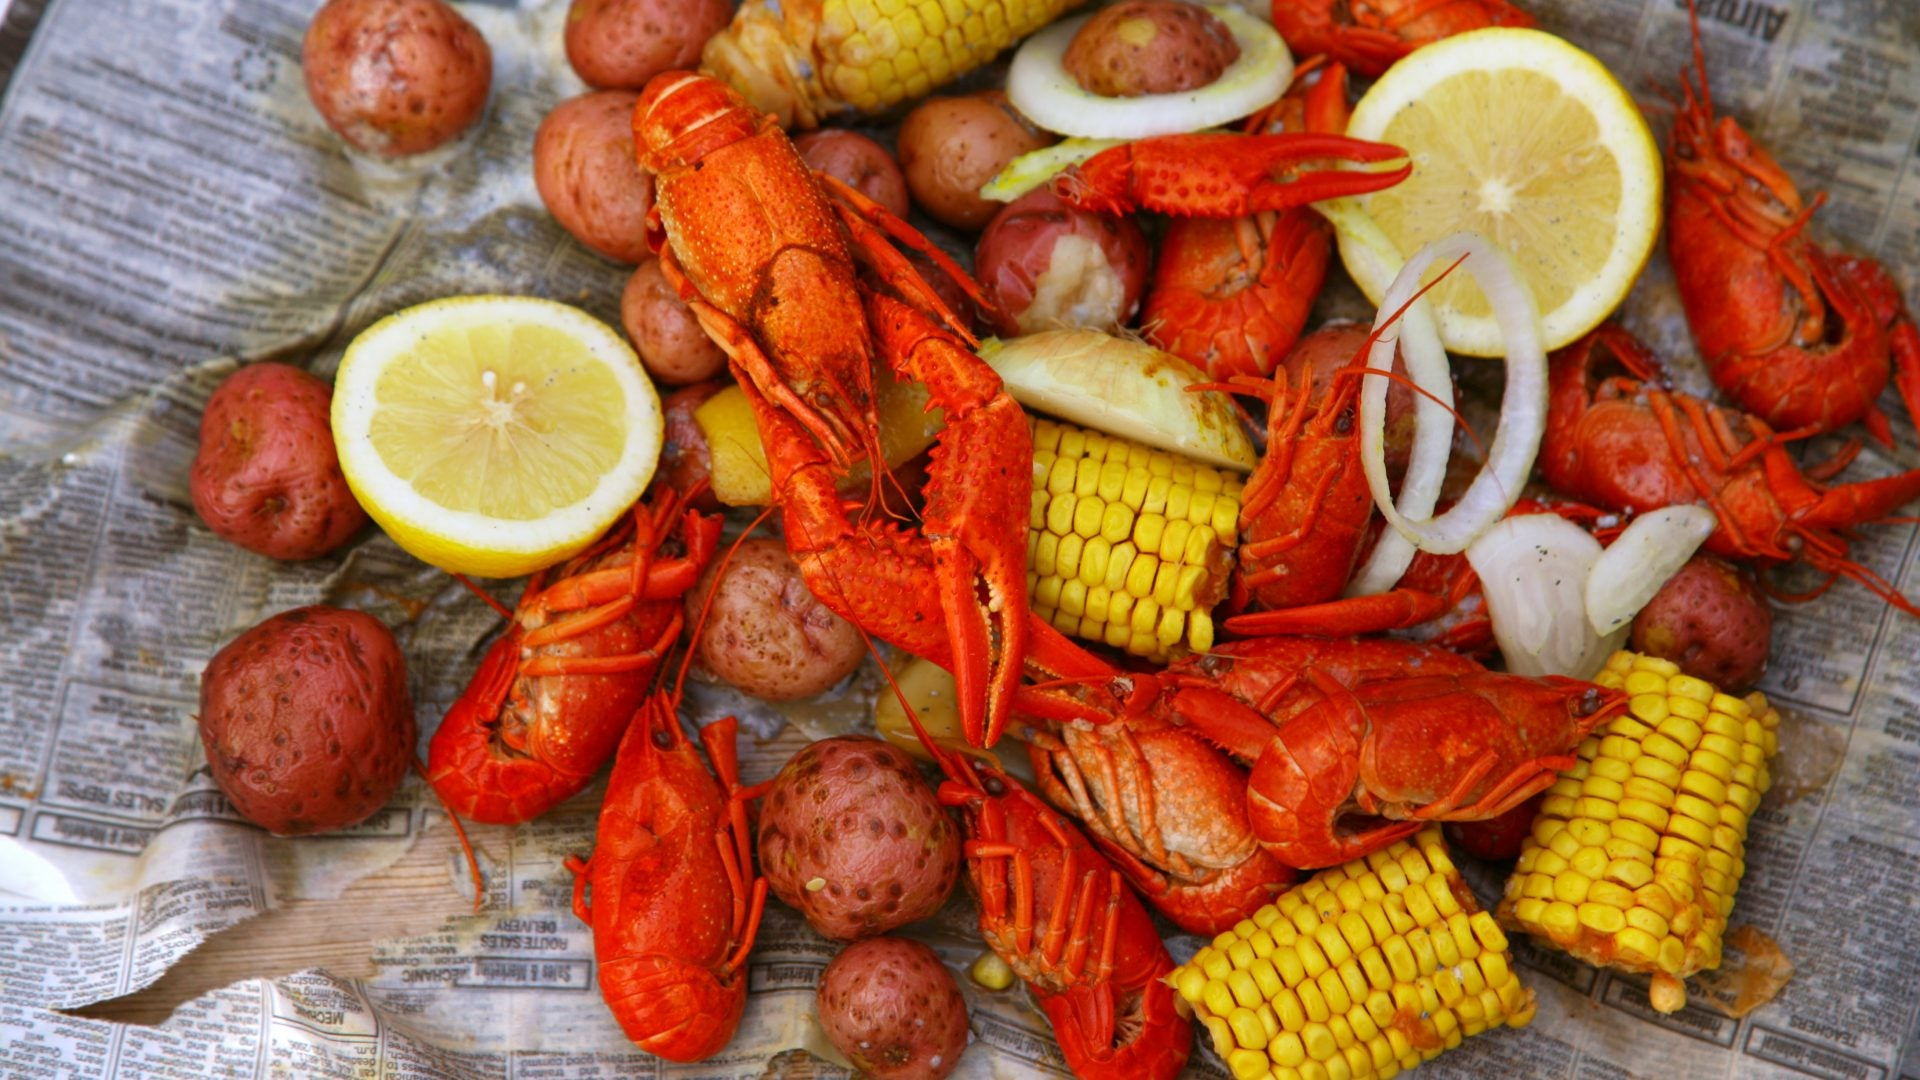 Missing New Orleans? Try These Mouth-Watering NOLA Recipes Tonight